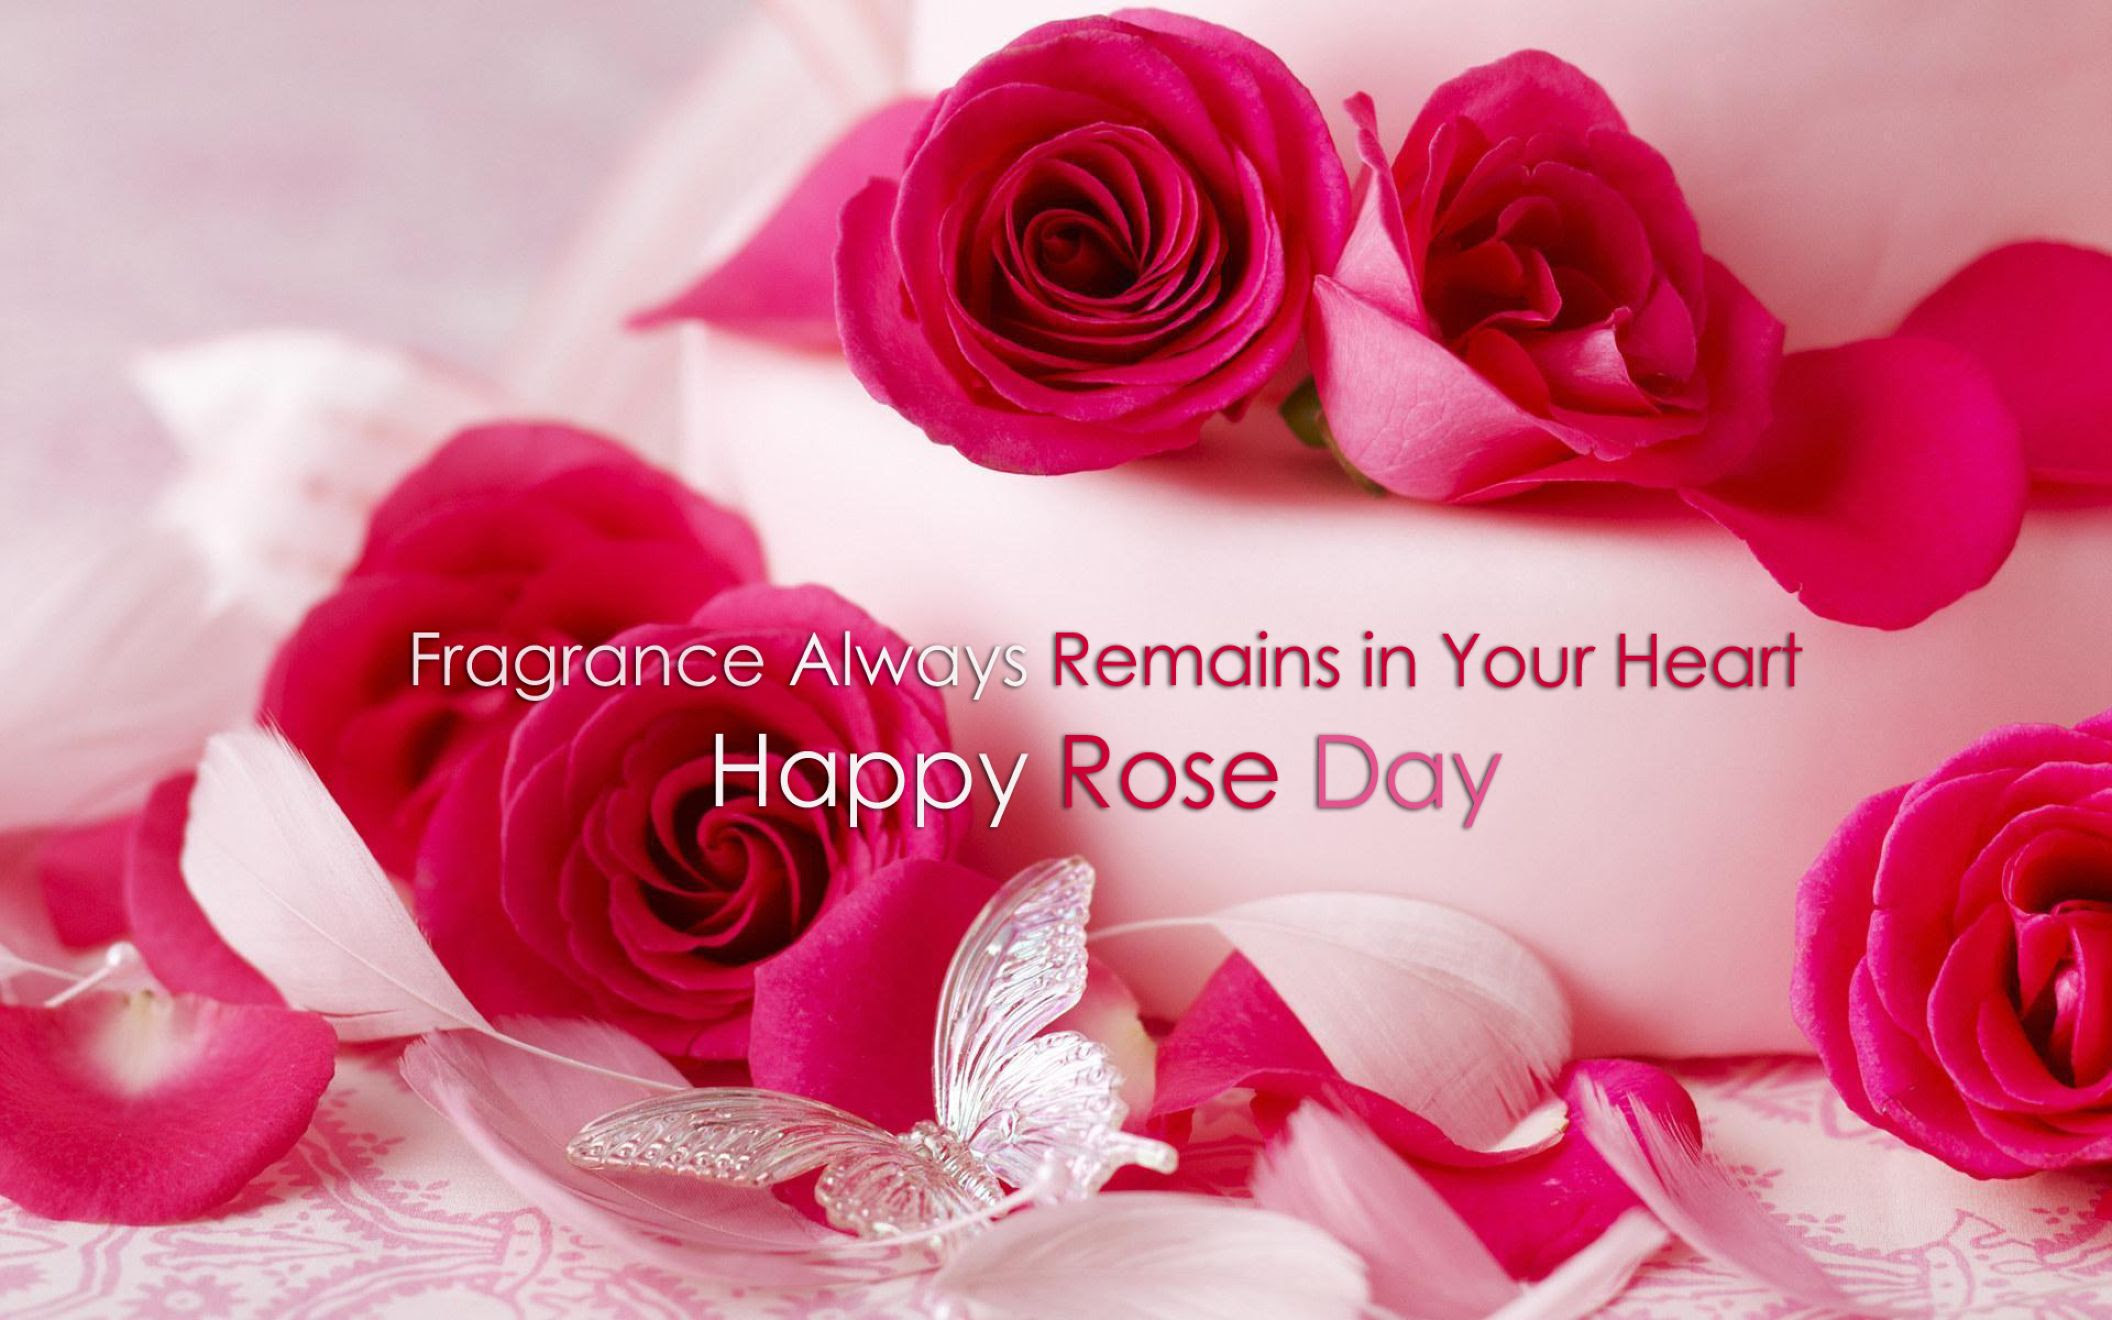 Happy Rose Day 2016 Red Rose With Love Quotes Wallpaper Desktop Hd